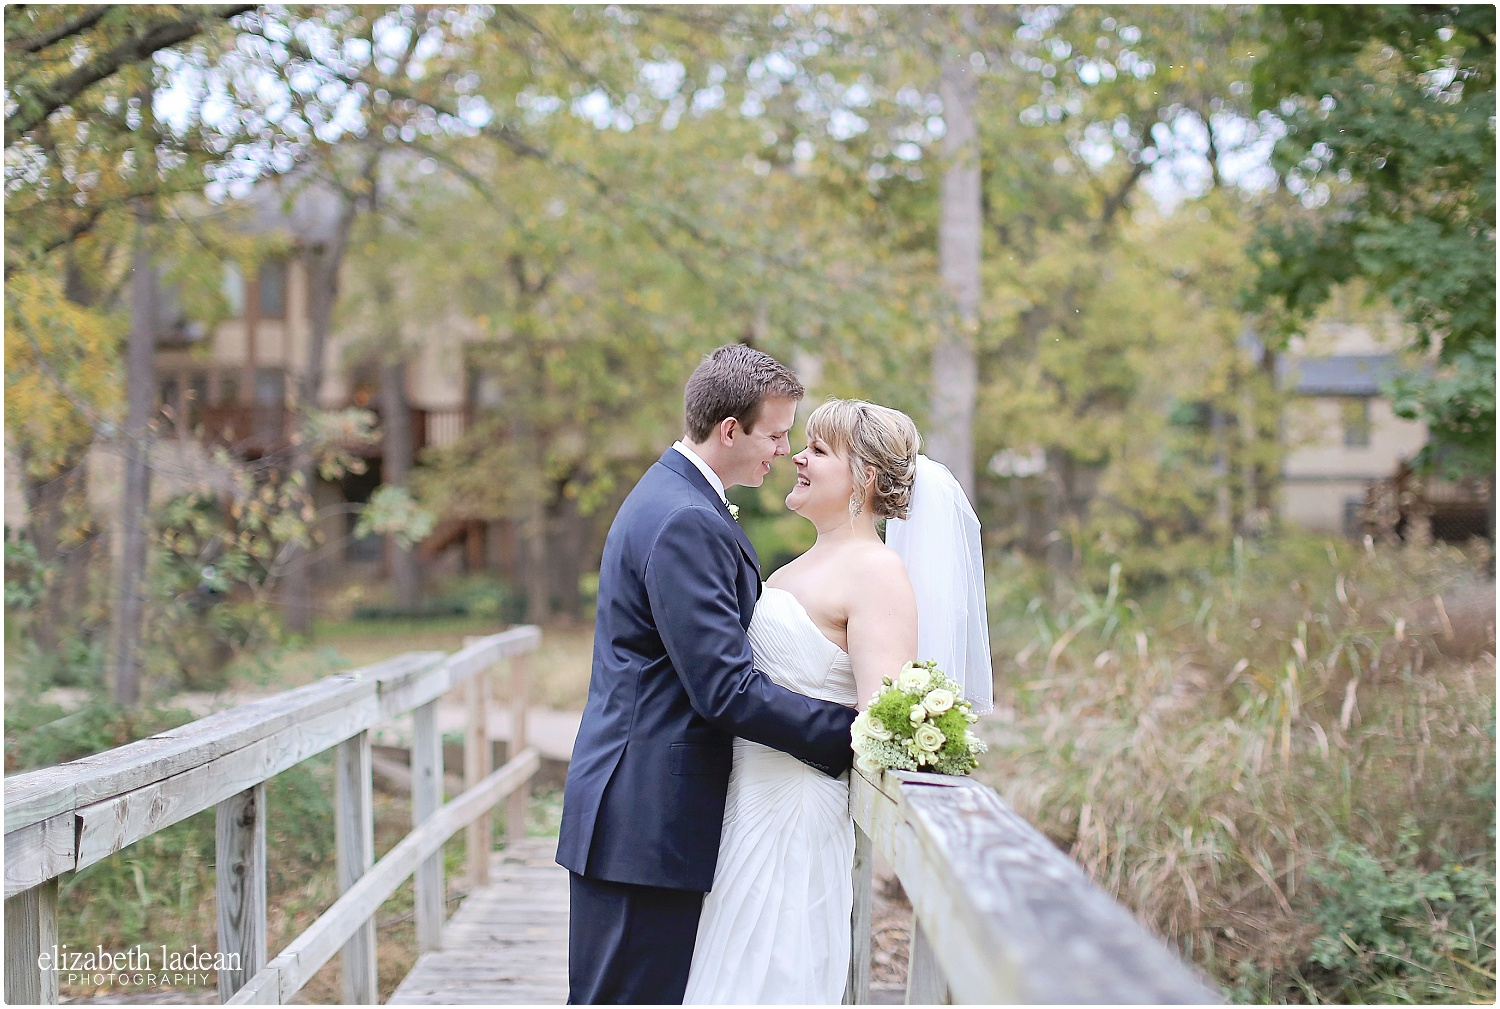 Deer-Creek-Weddings-Anniversary-K+D-Oct-ElizabethLadeanPhotography-photo_6335.jpg